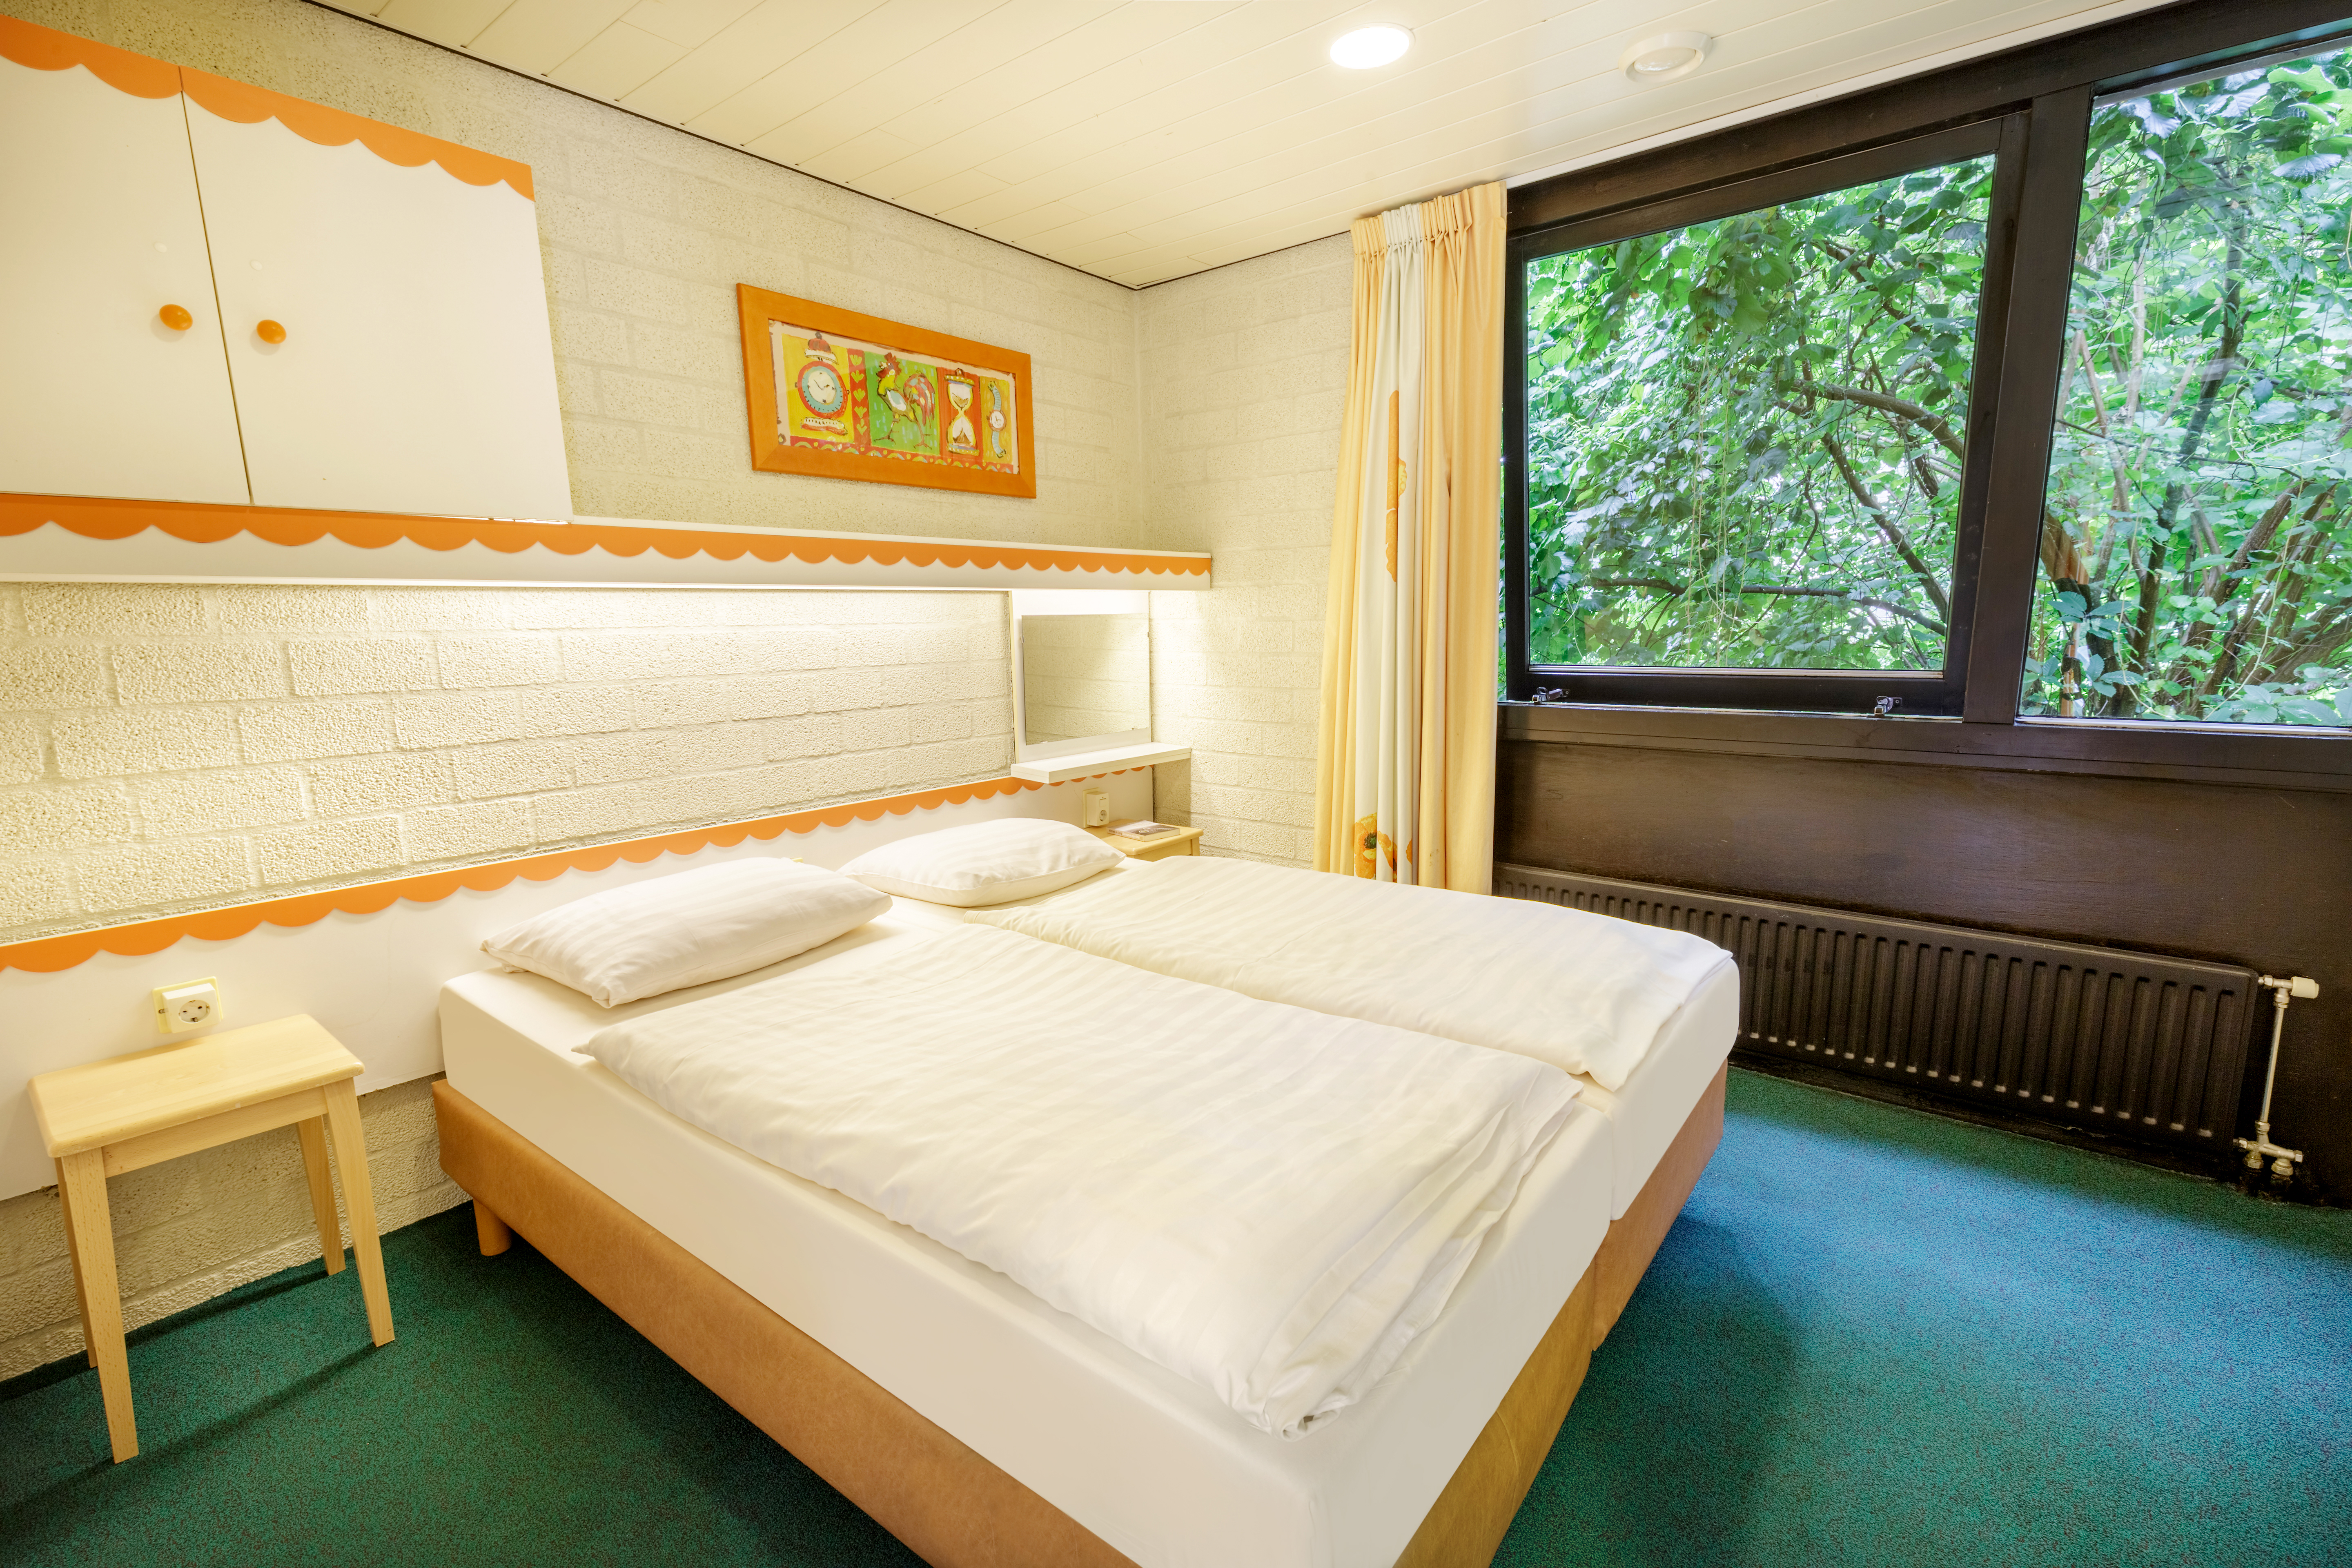 md39-cottage-6-persons-comfort